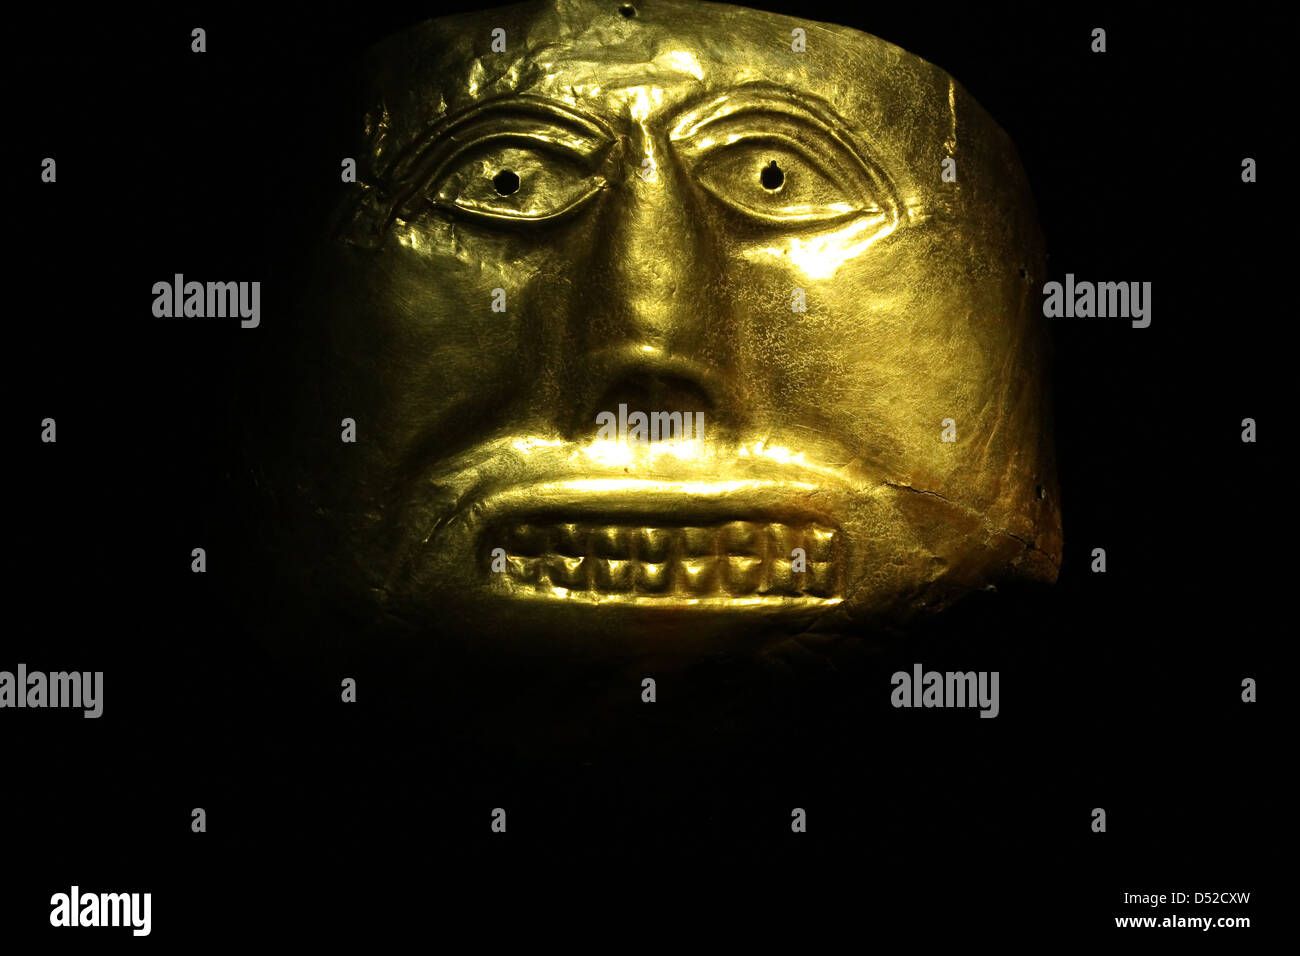 Golden mask in the Gold Museum, Bogota, Colombia. Tolima culture, Pre-Columbian America - Stock Image